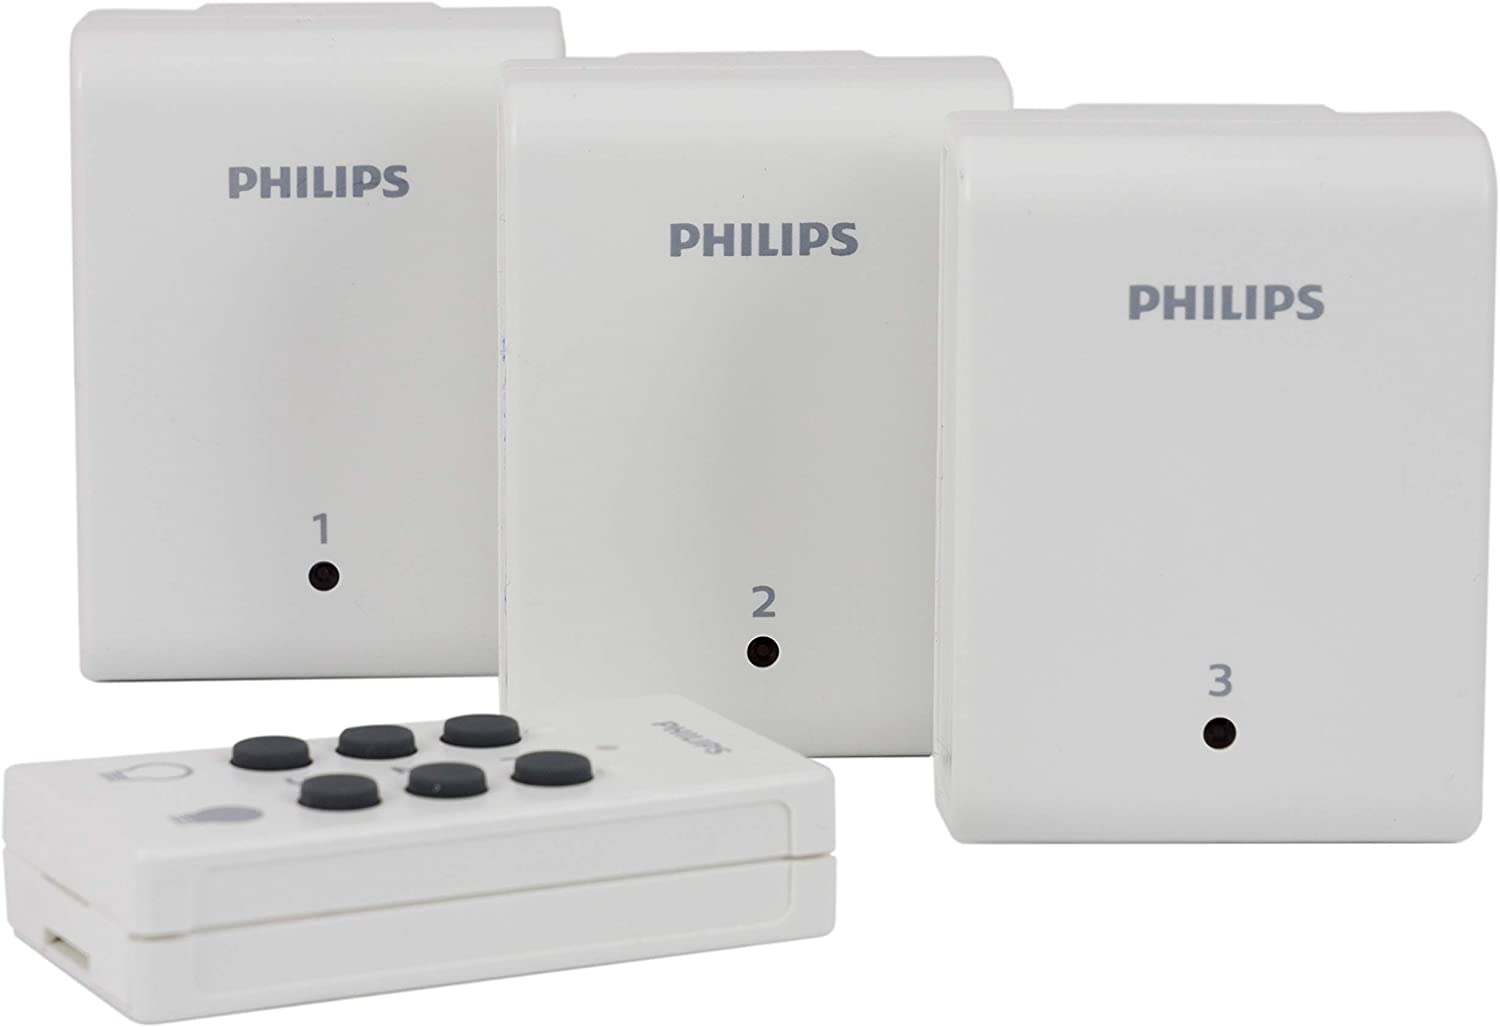 Philips Indoor Lighting Control with Wireless Remote Switch, 3 Receivers, ON/OFF Control, 1 Polarized Outlet Each, 80ft. Signal, Ideal for Lamps, Seasonal Lighting, LED, SPC1235AT/27